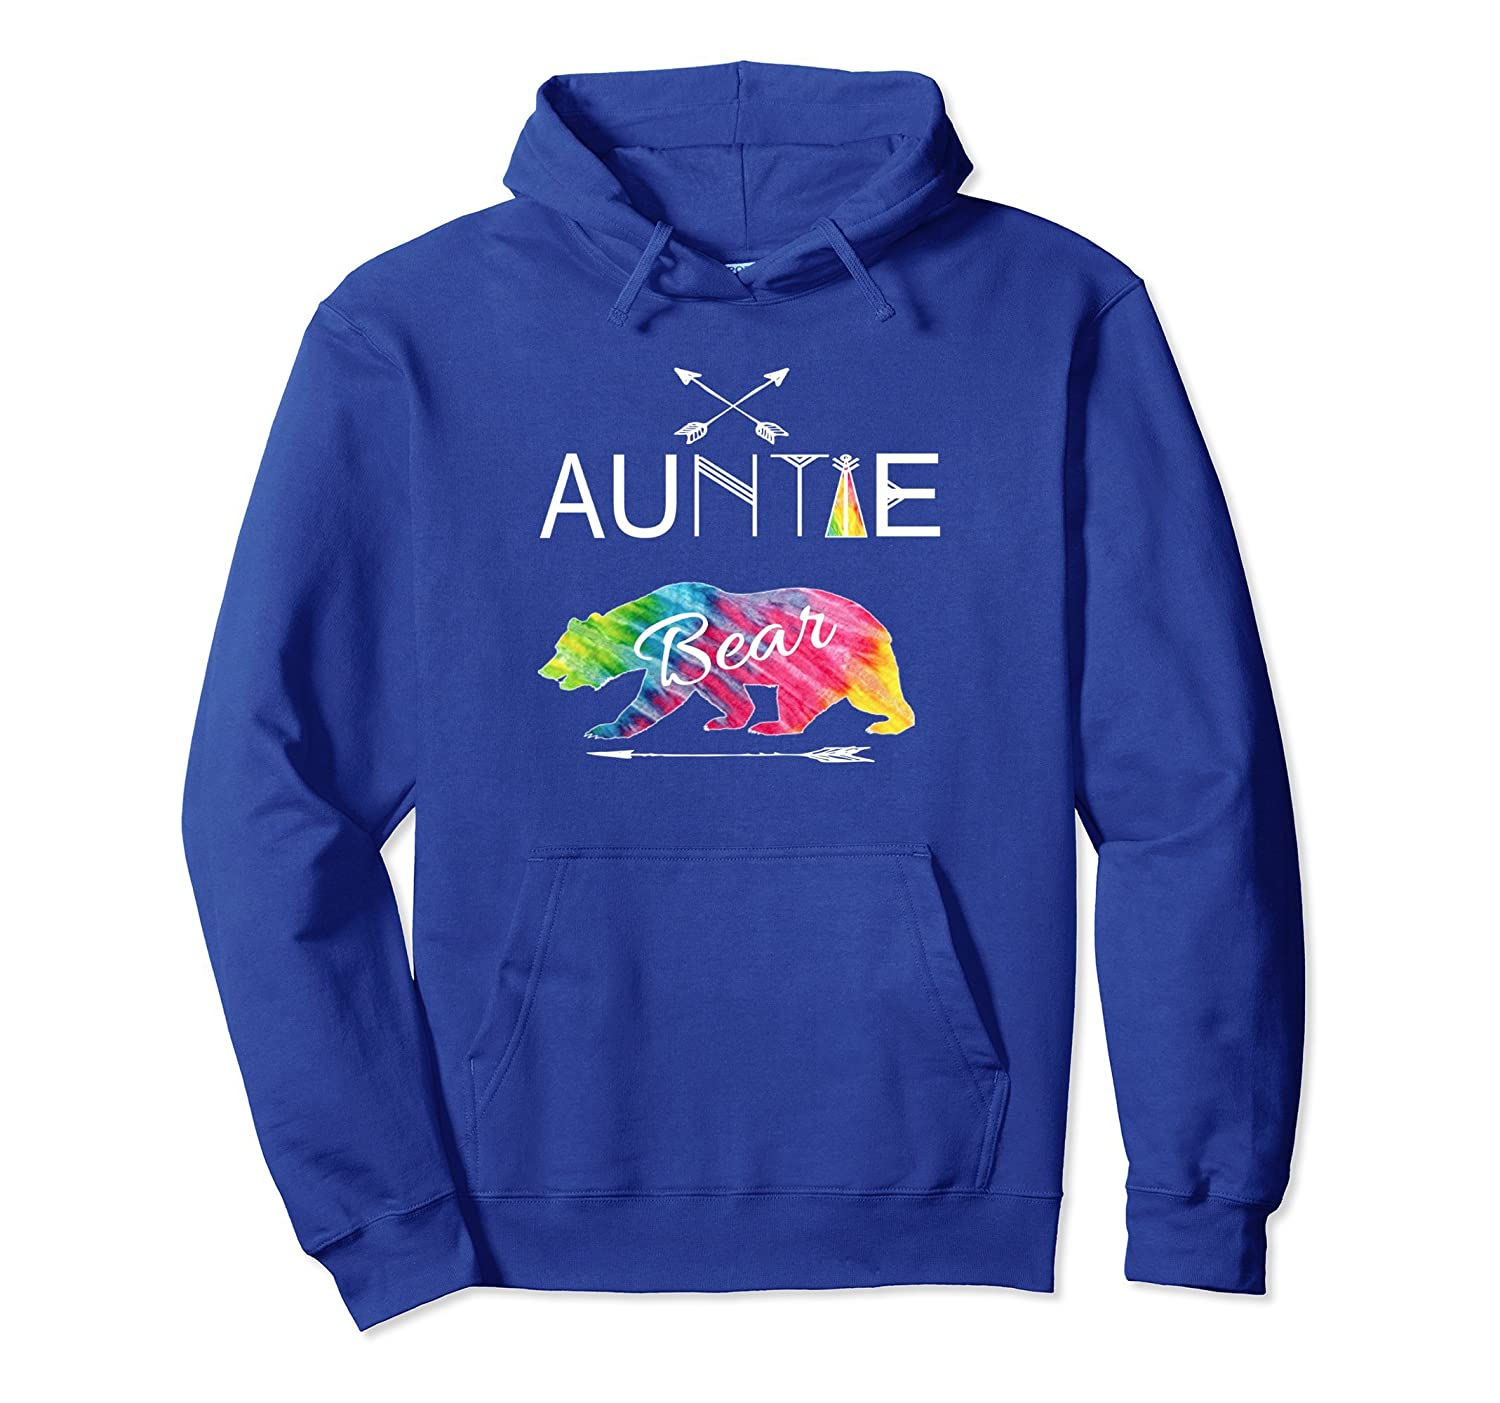 Auntie Bear Hoodie Tie Dye Family Vacation & Camping-AZP